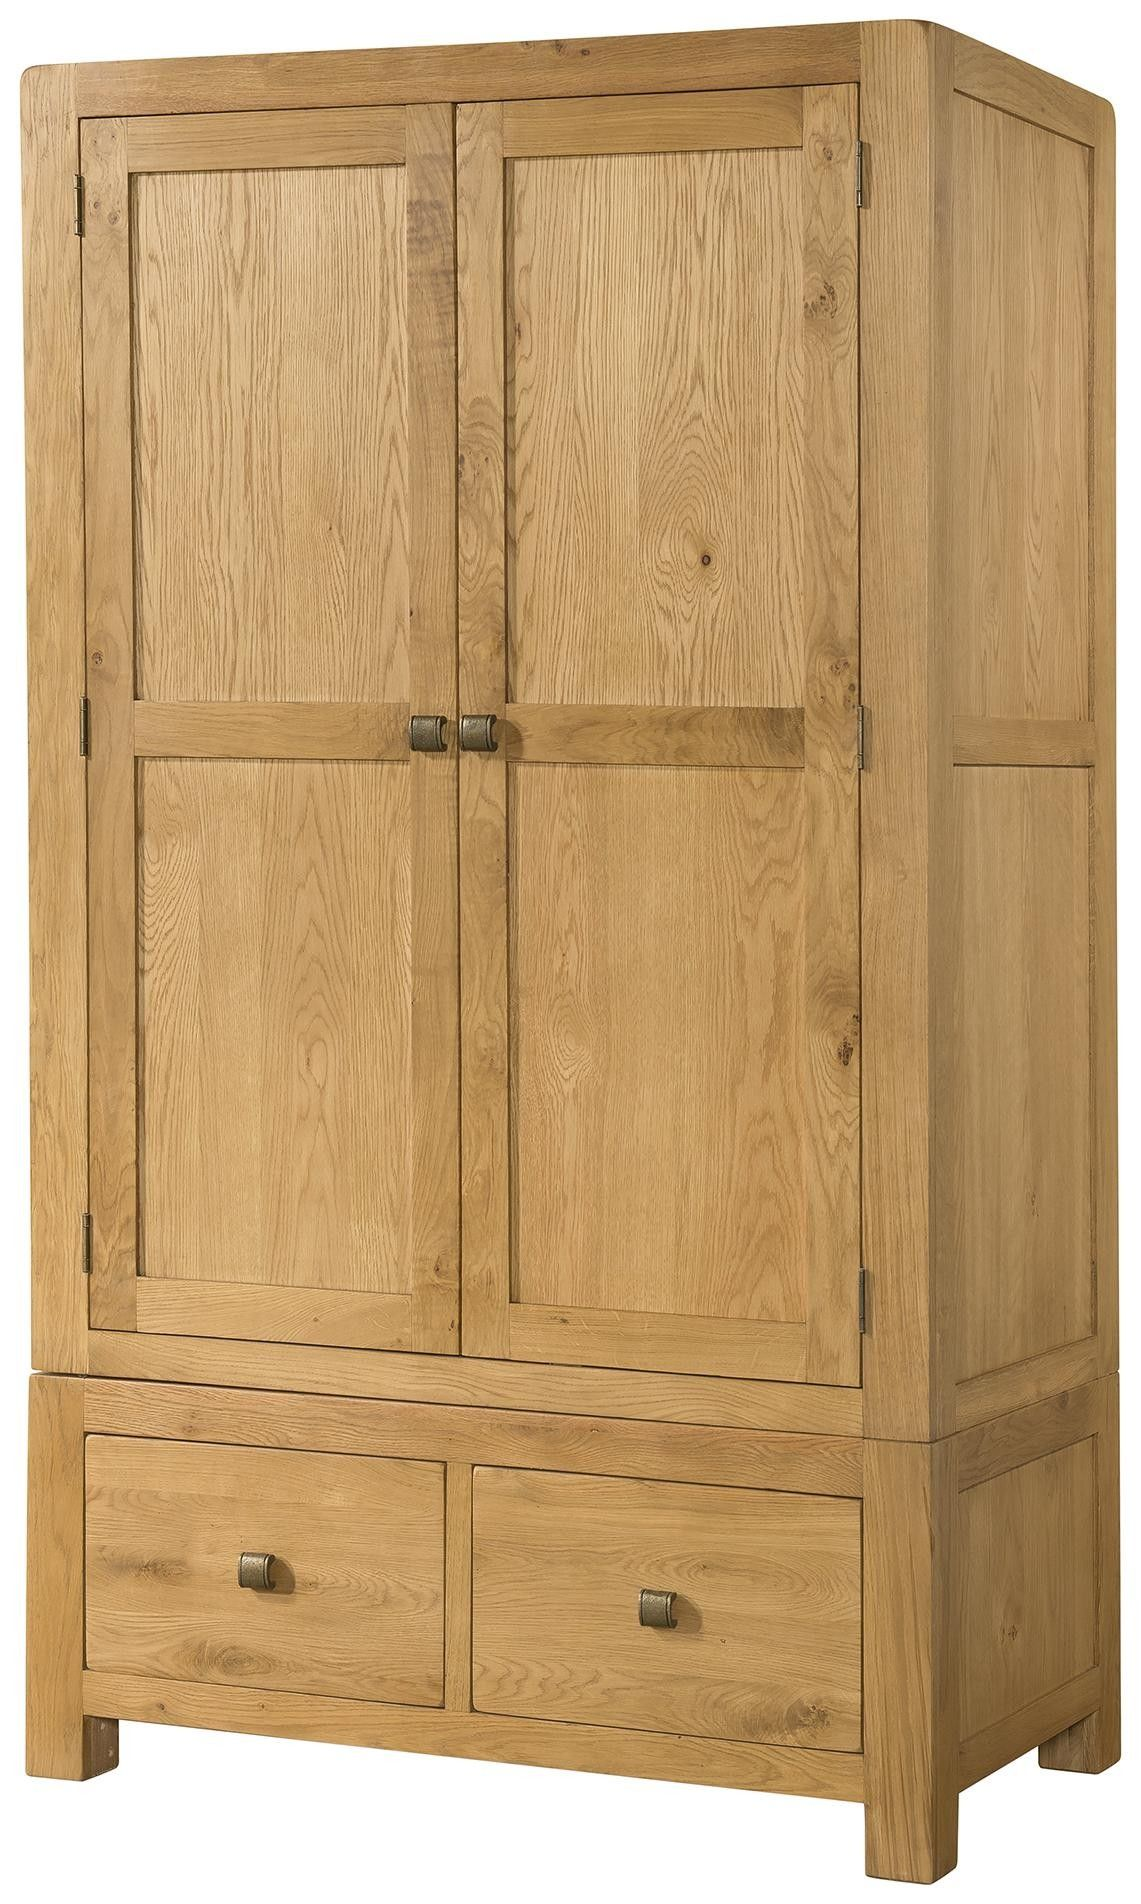 Kiefer Küchenschränke Radford Oak Double Wardrobe With 2 Drawers To Build Oak